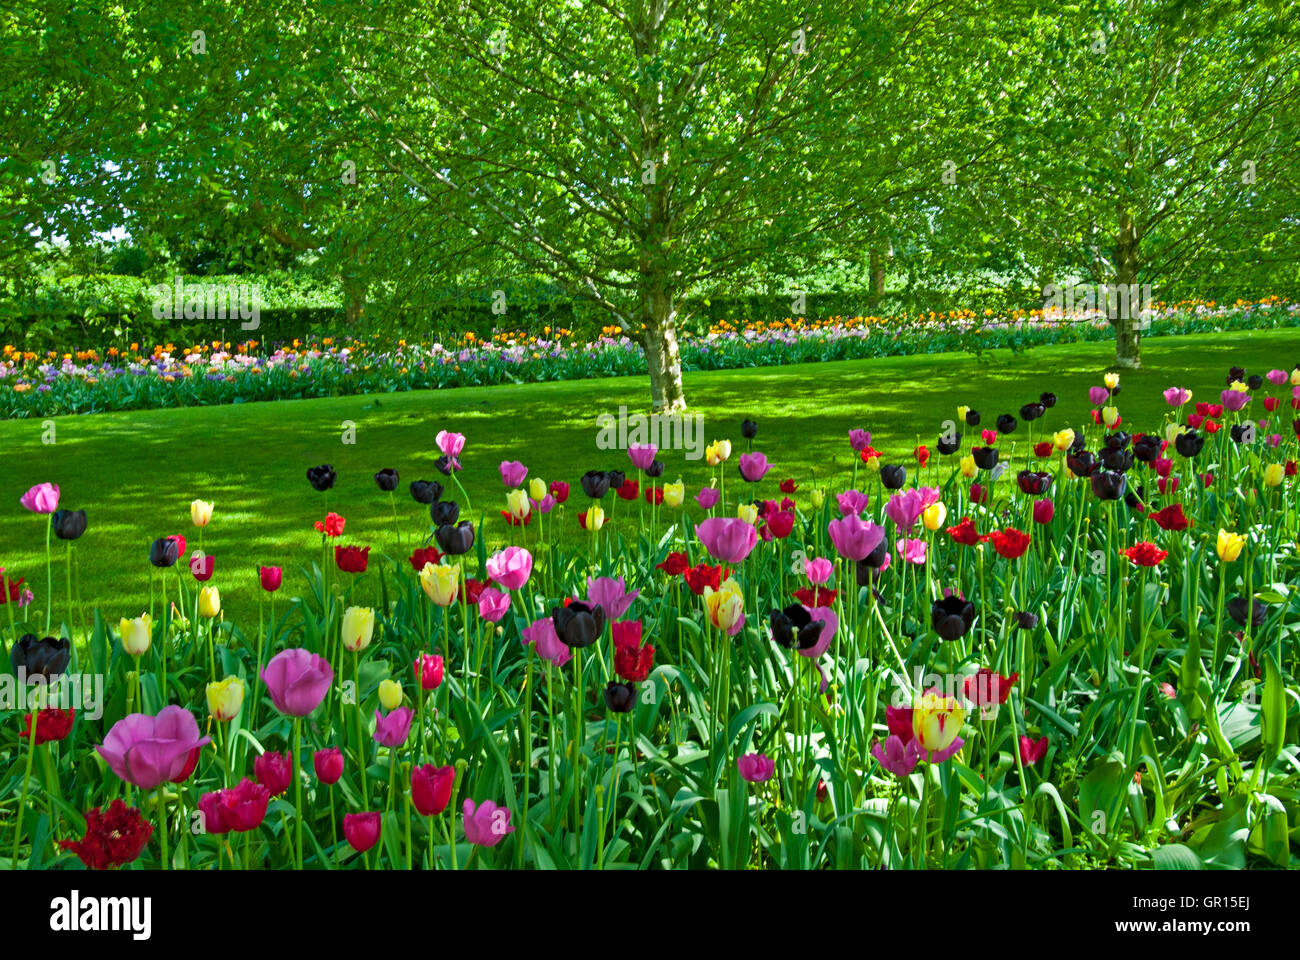 A pastoral scene with tulips at Keukenhof Gardens, Lisse, Holland - Stock Image